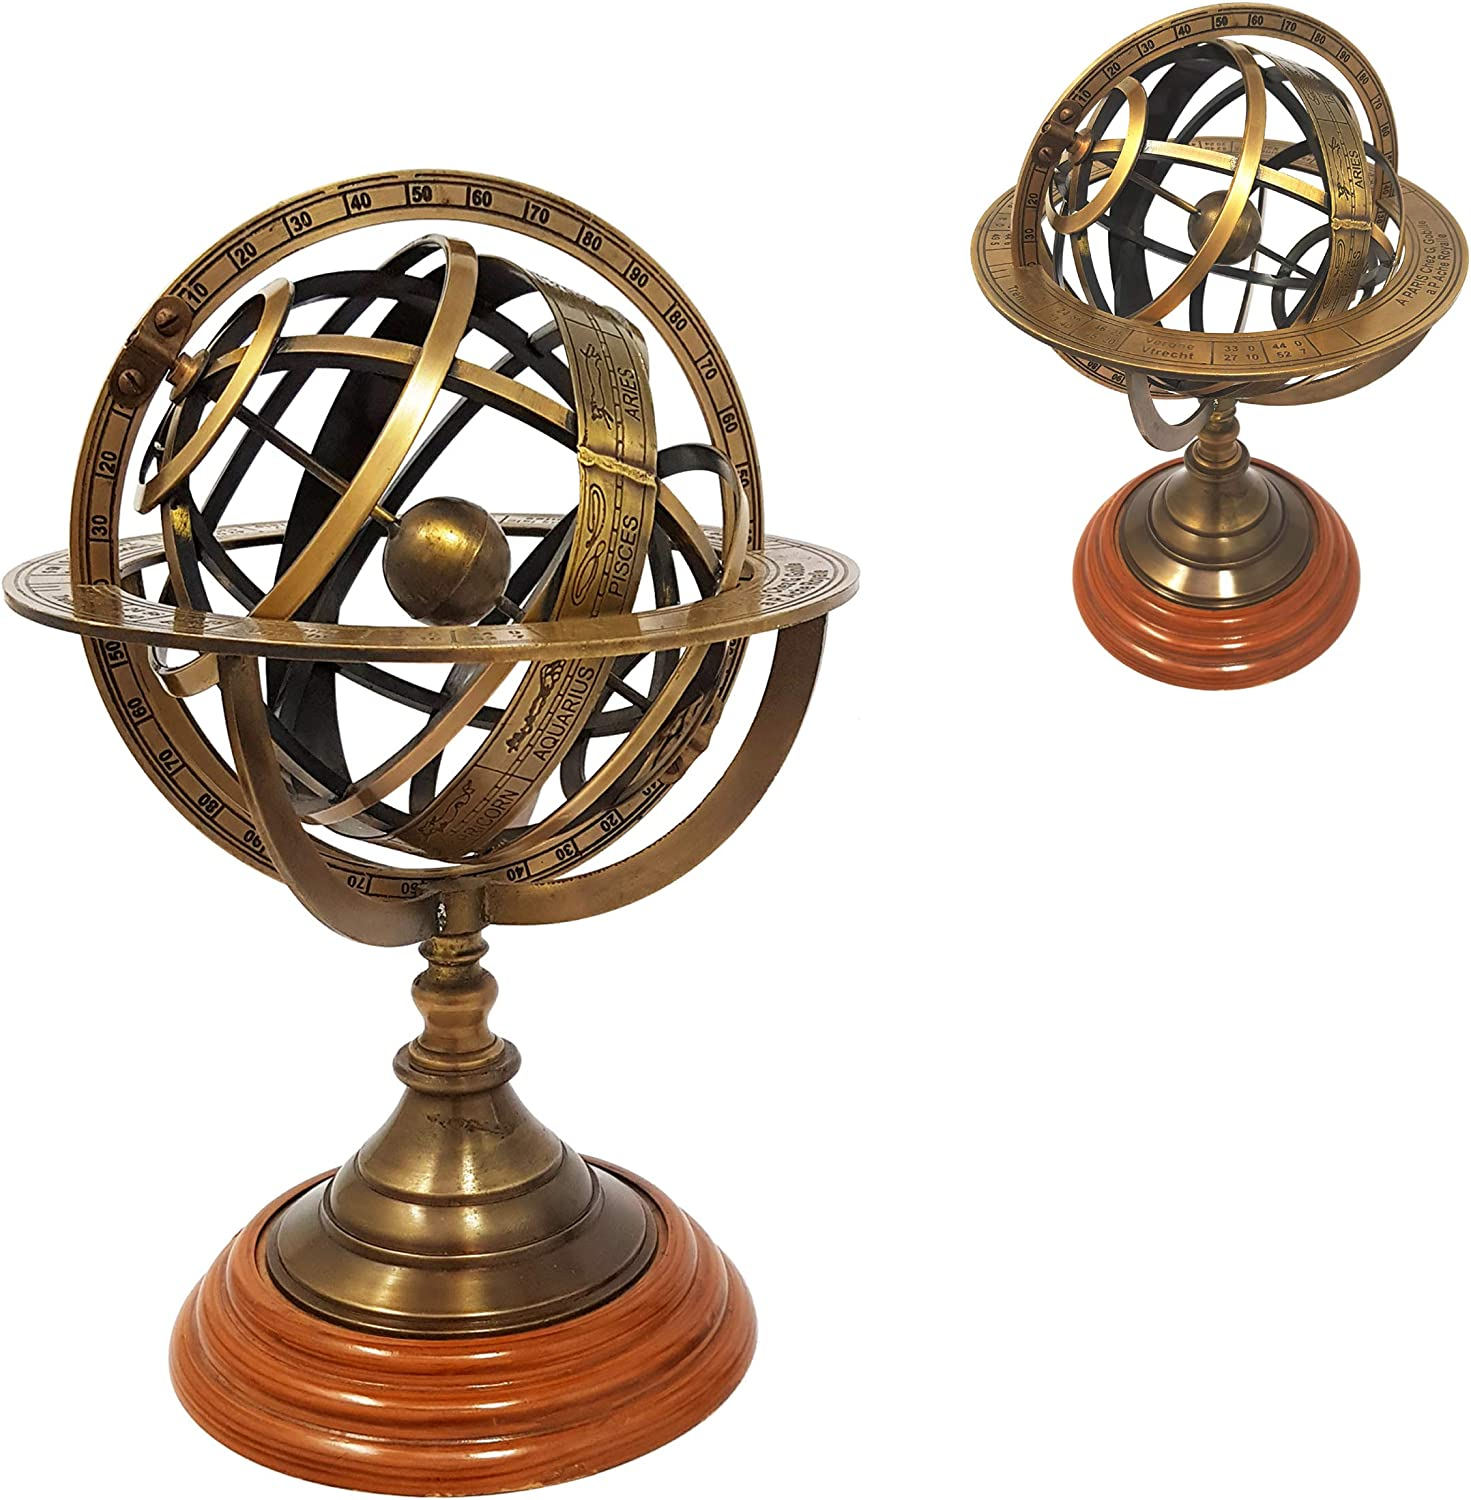 Brass Nautical - 8 inches Tall Antique Armillary Sphere Globe Replica Gift; Vintage Table Décor and Gift